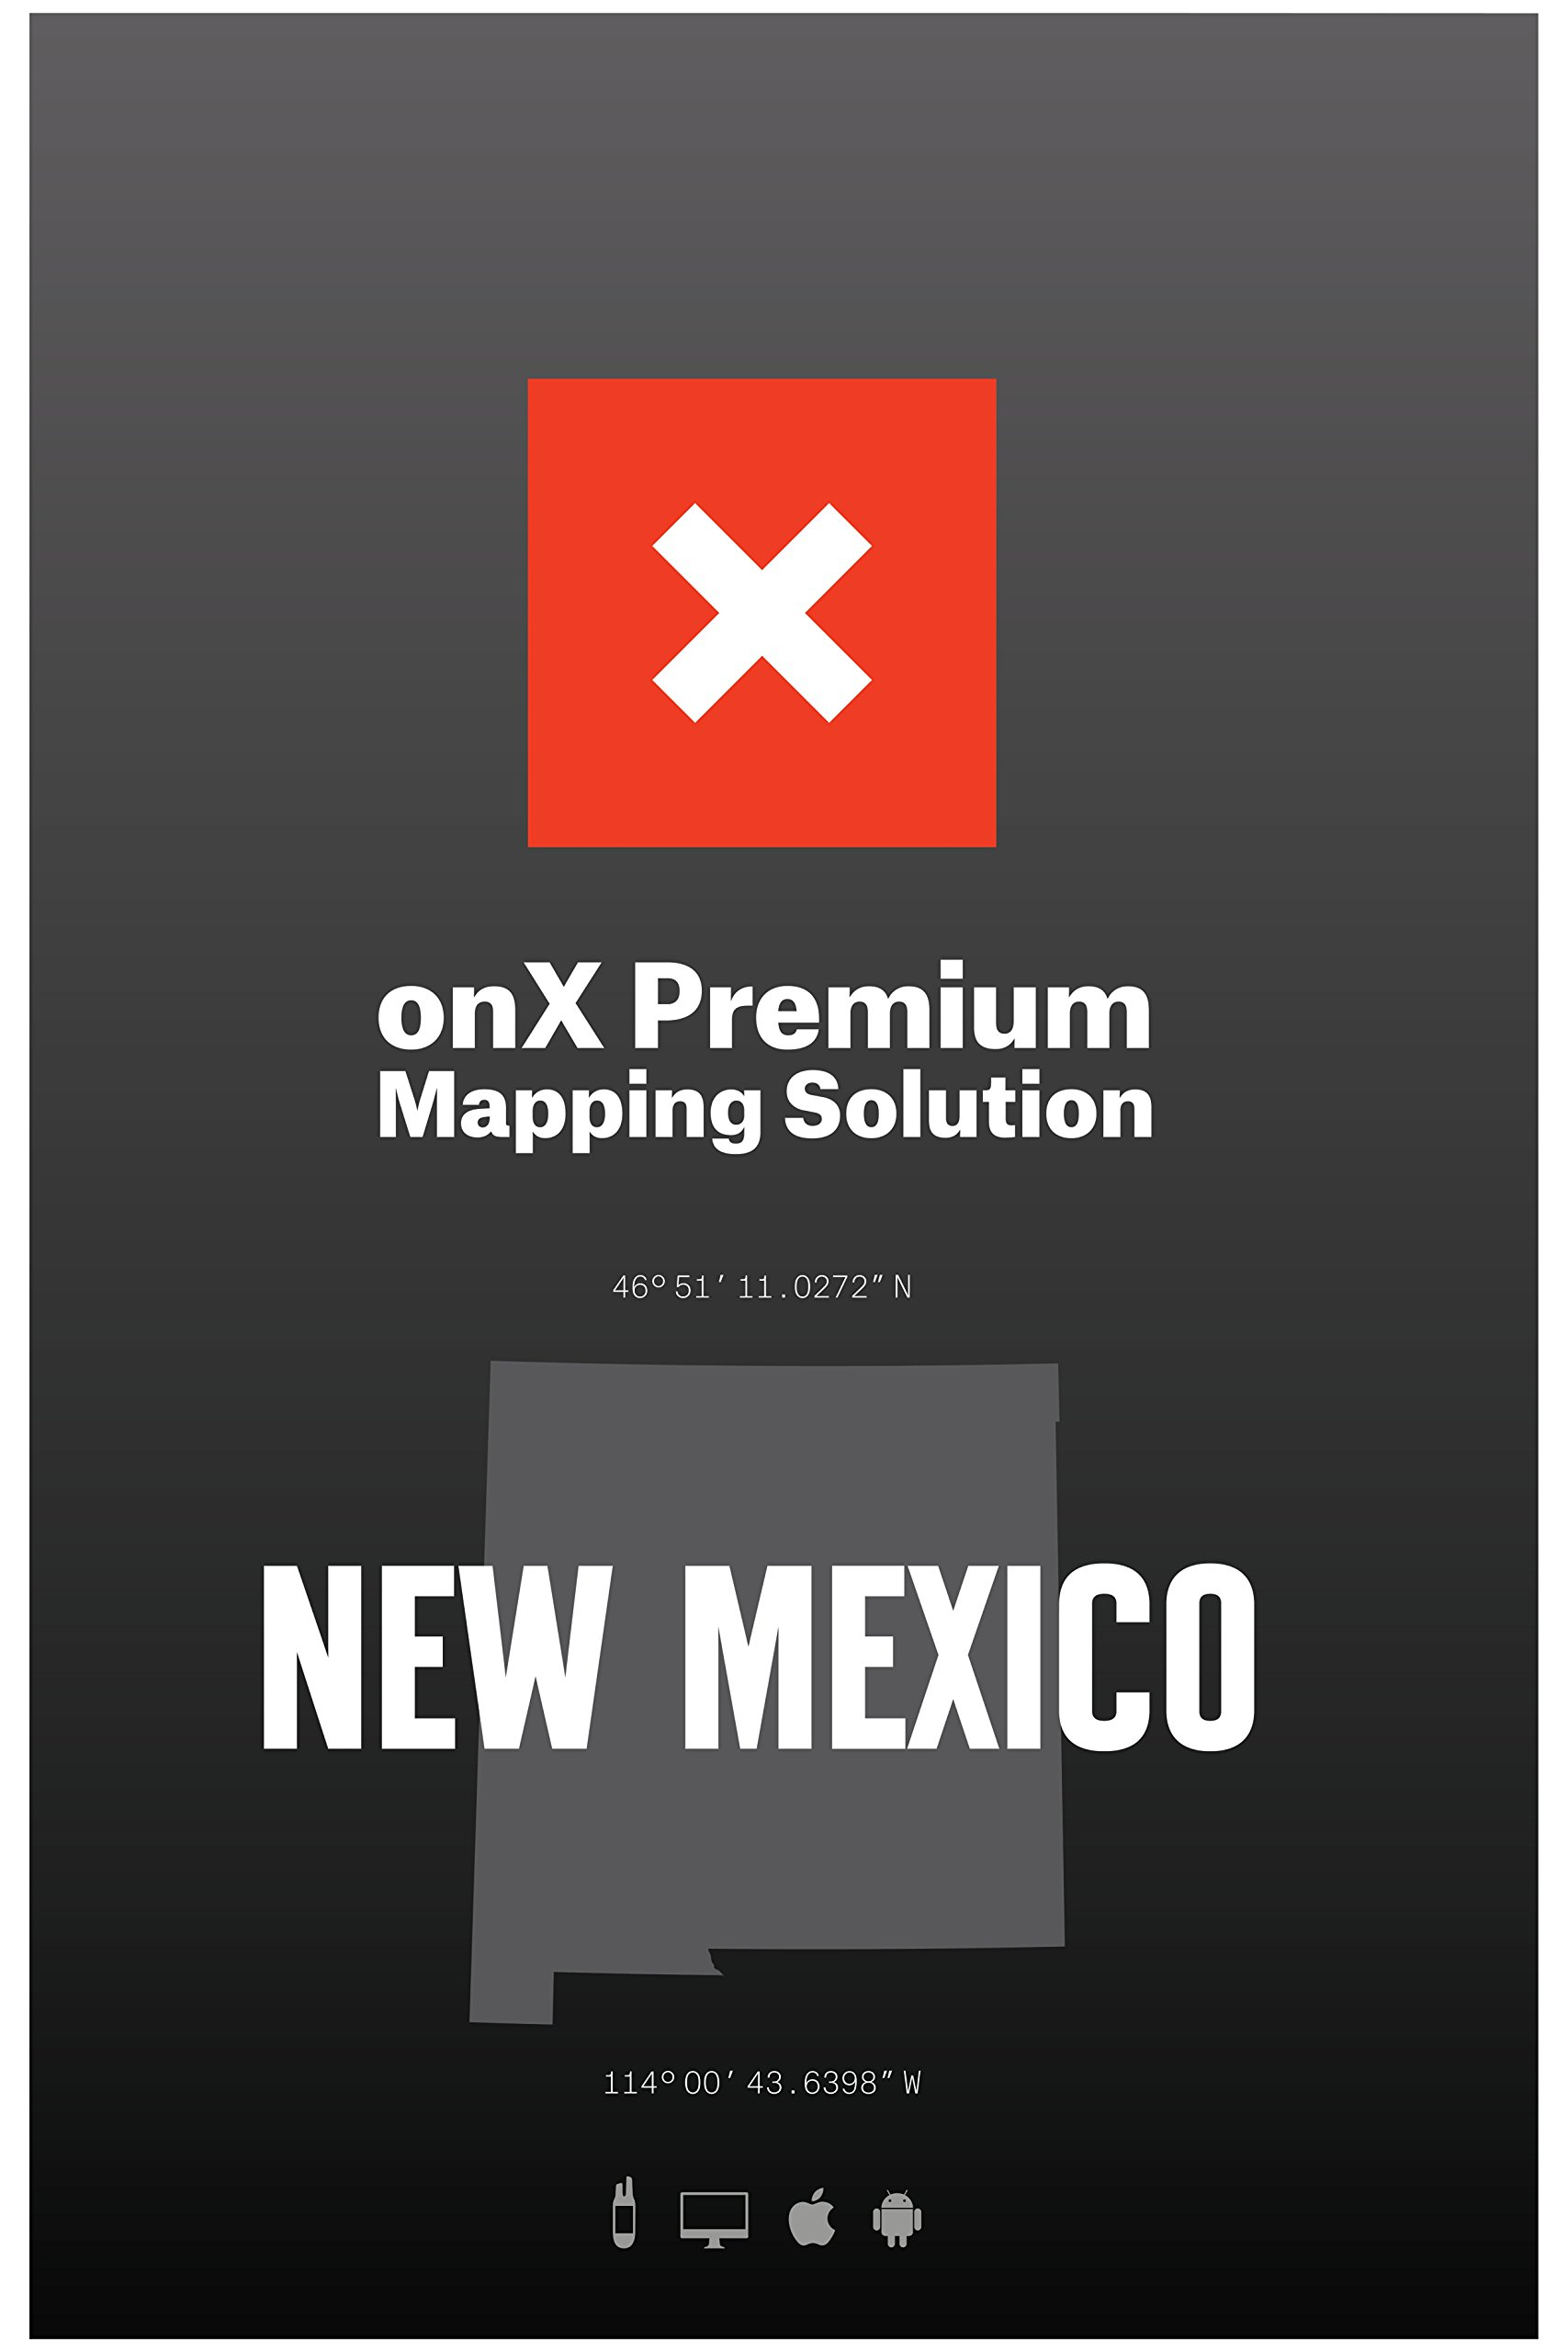 ONX Hunt: New Mexico Hunt Chip for Garmin GPS - Hunting Maps with Public & Private Land Ownership - Hunting Units - Includes Premium Membership Hunting App for iPhone, Android & Web by ONX